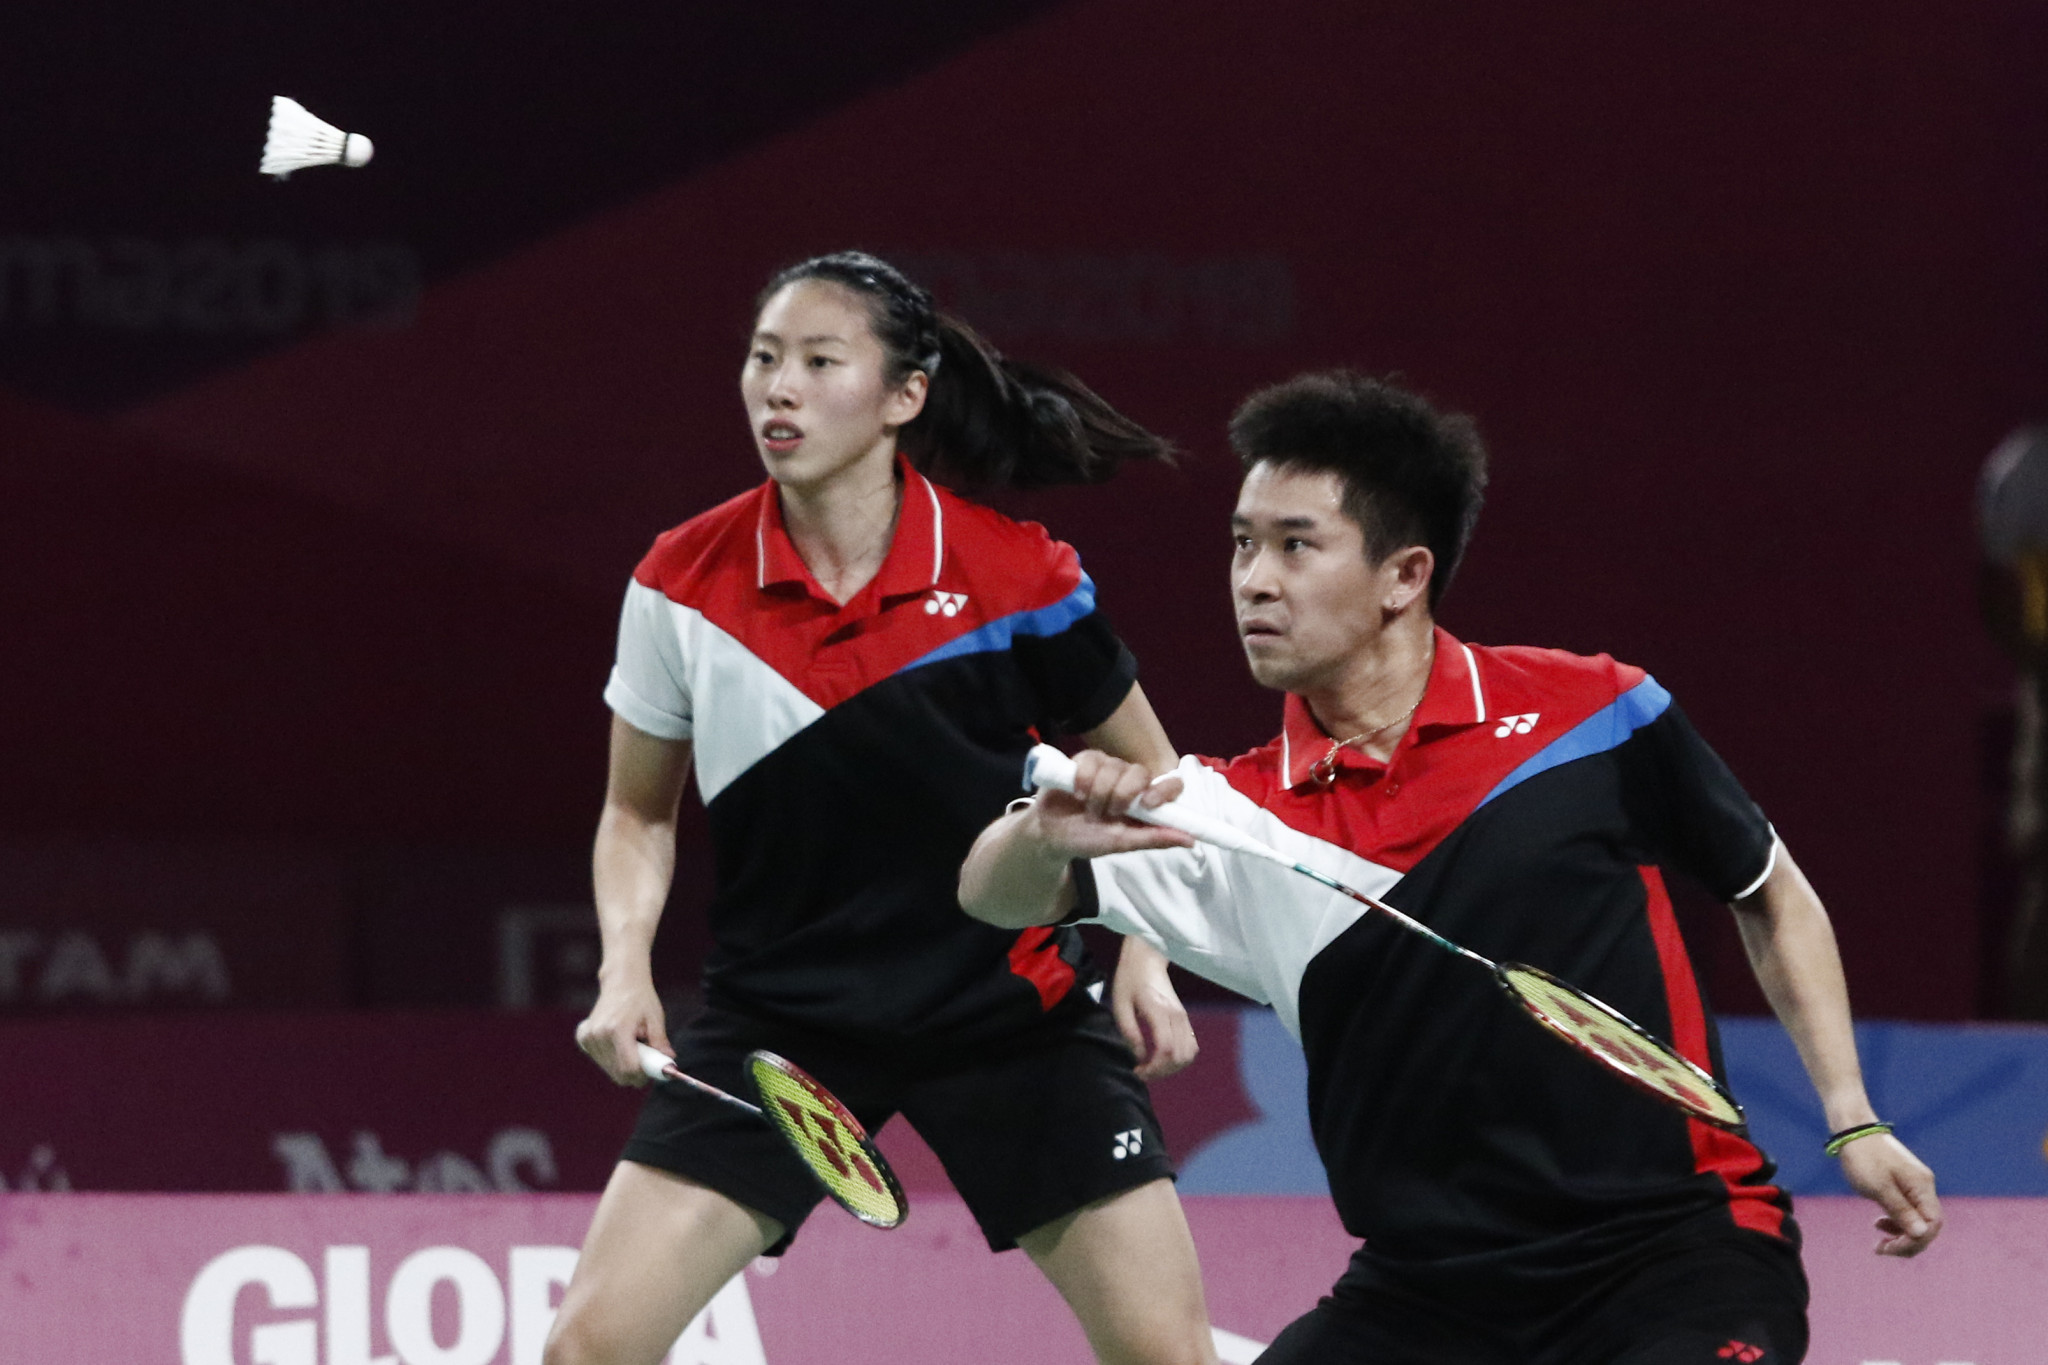 Canada collect four gold medals to dominate badminton at Lima 2019